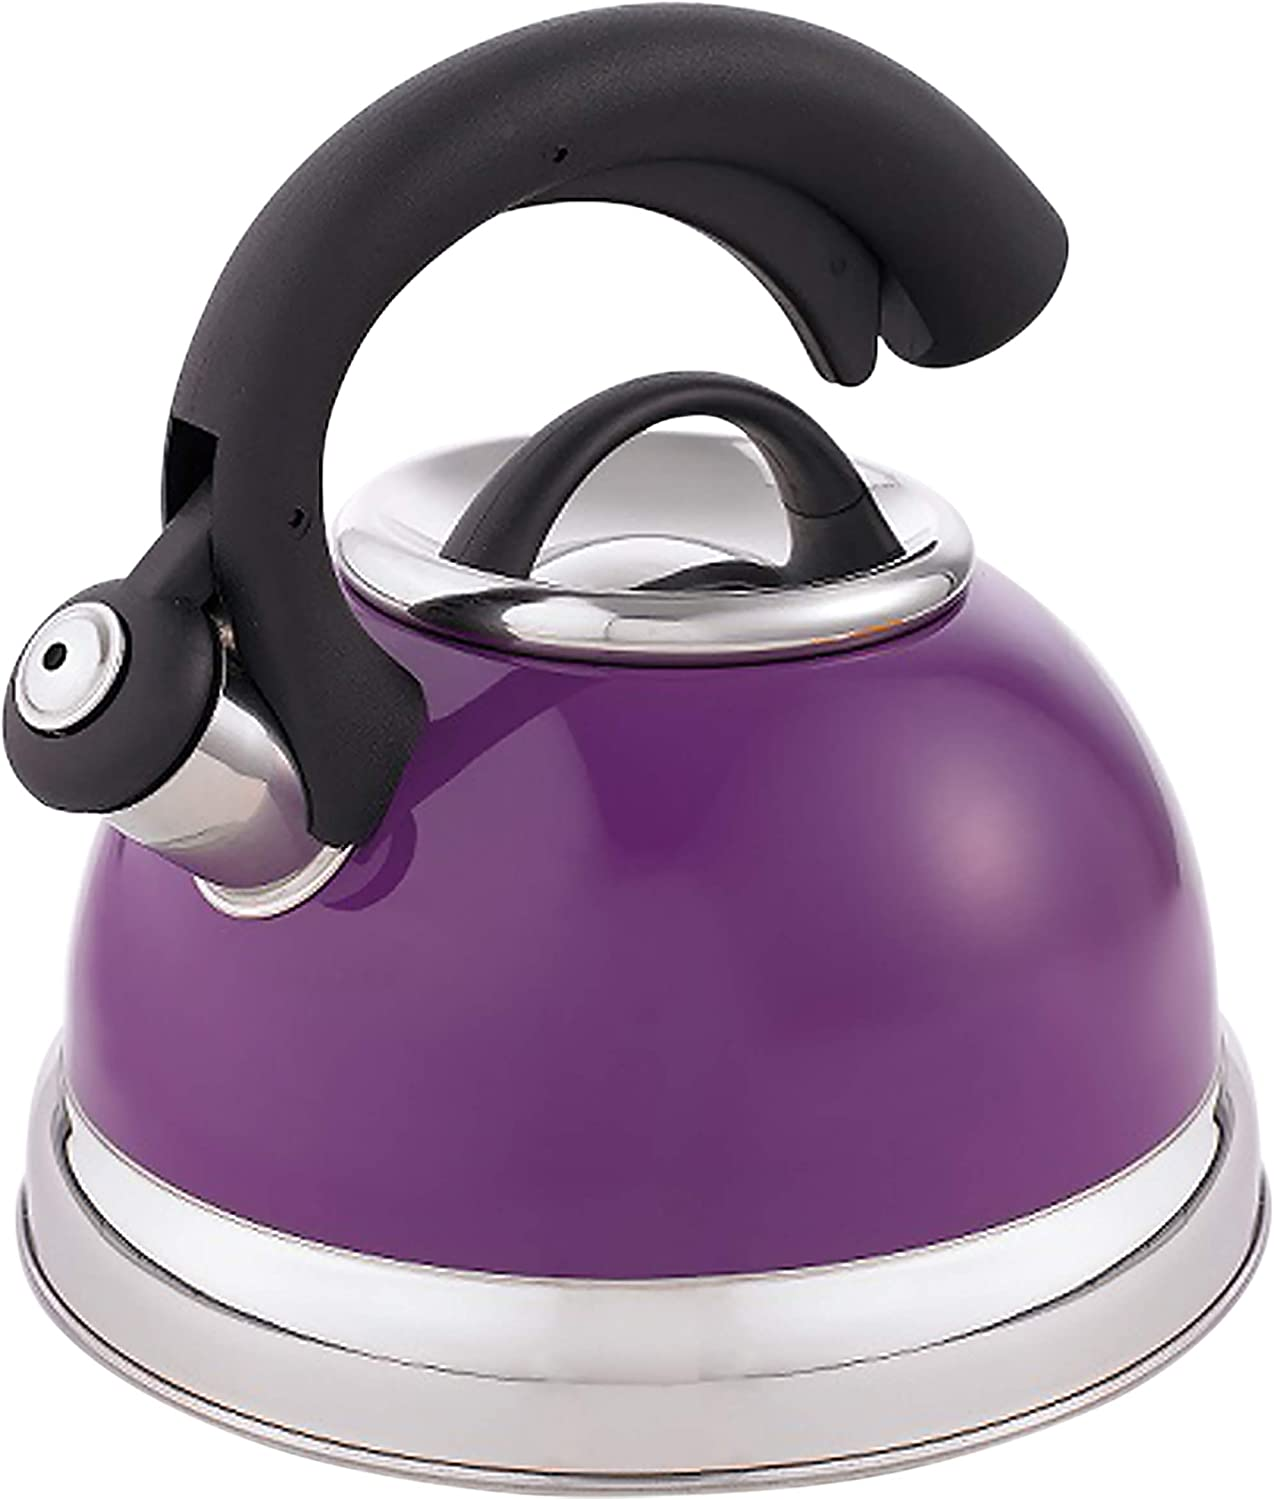 Creative Home Symphony 2.6 Qt. Stainless Steel Whistling Tea Kettle with Aluminum Capsulated Bottom for Even Heat Distribution, Purple